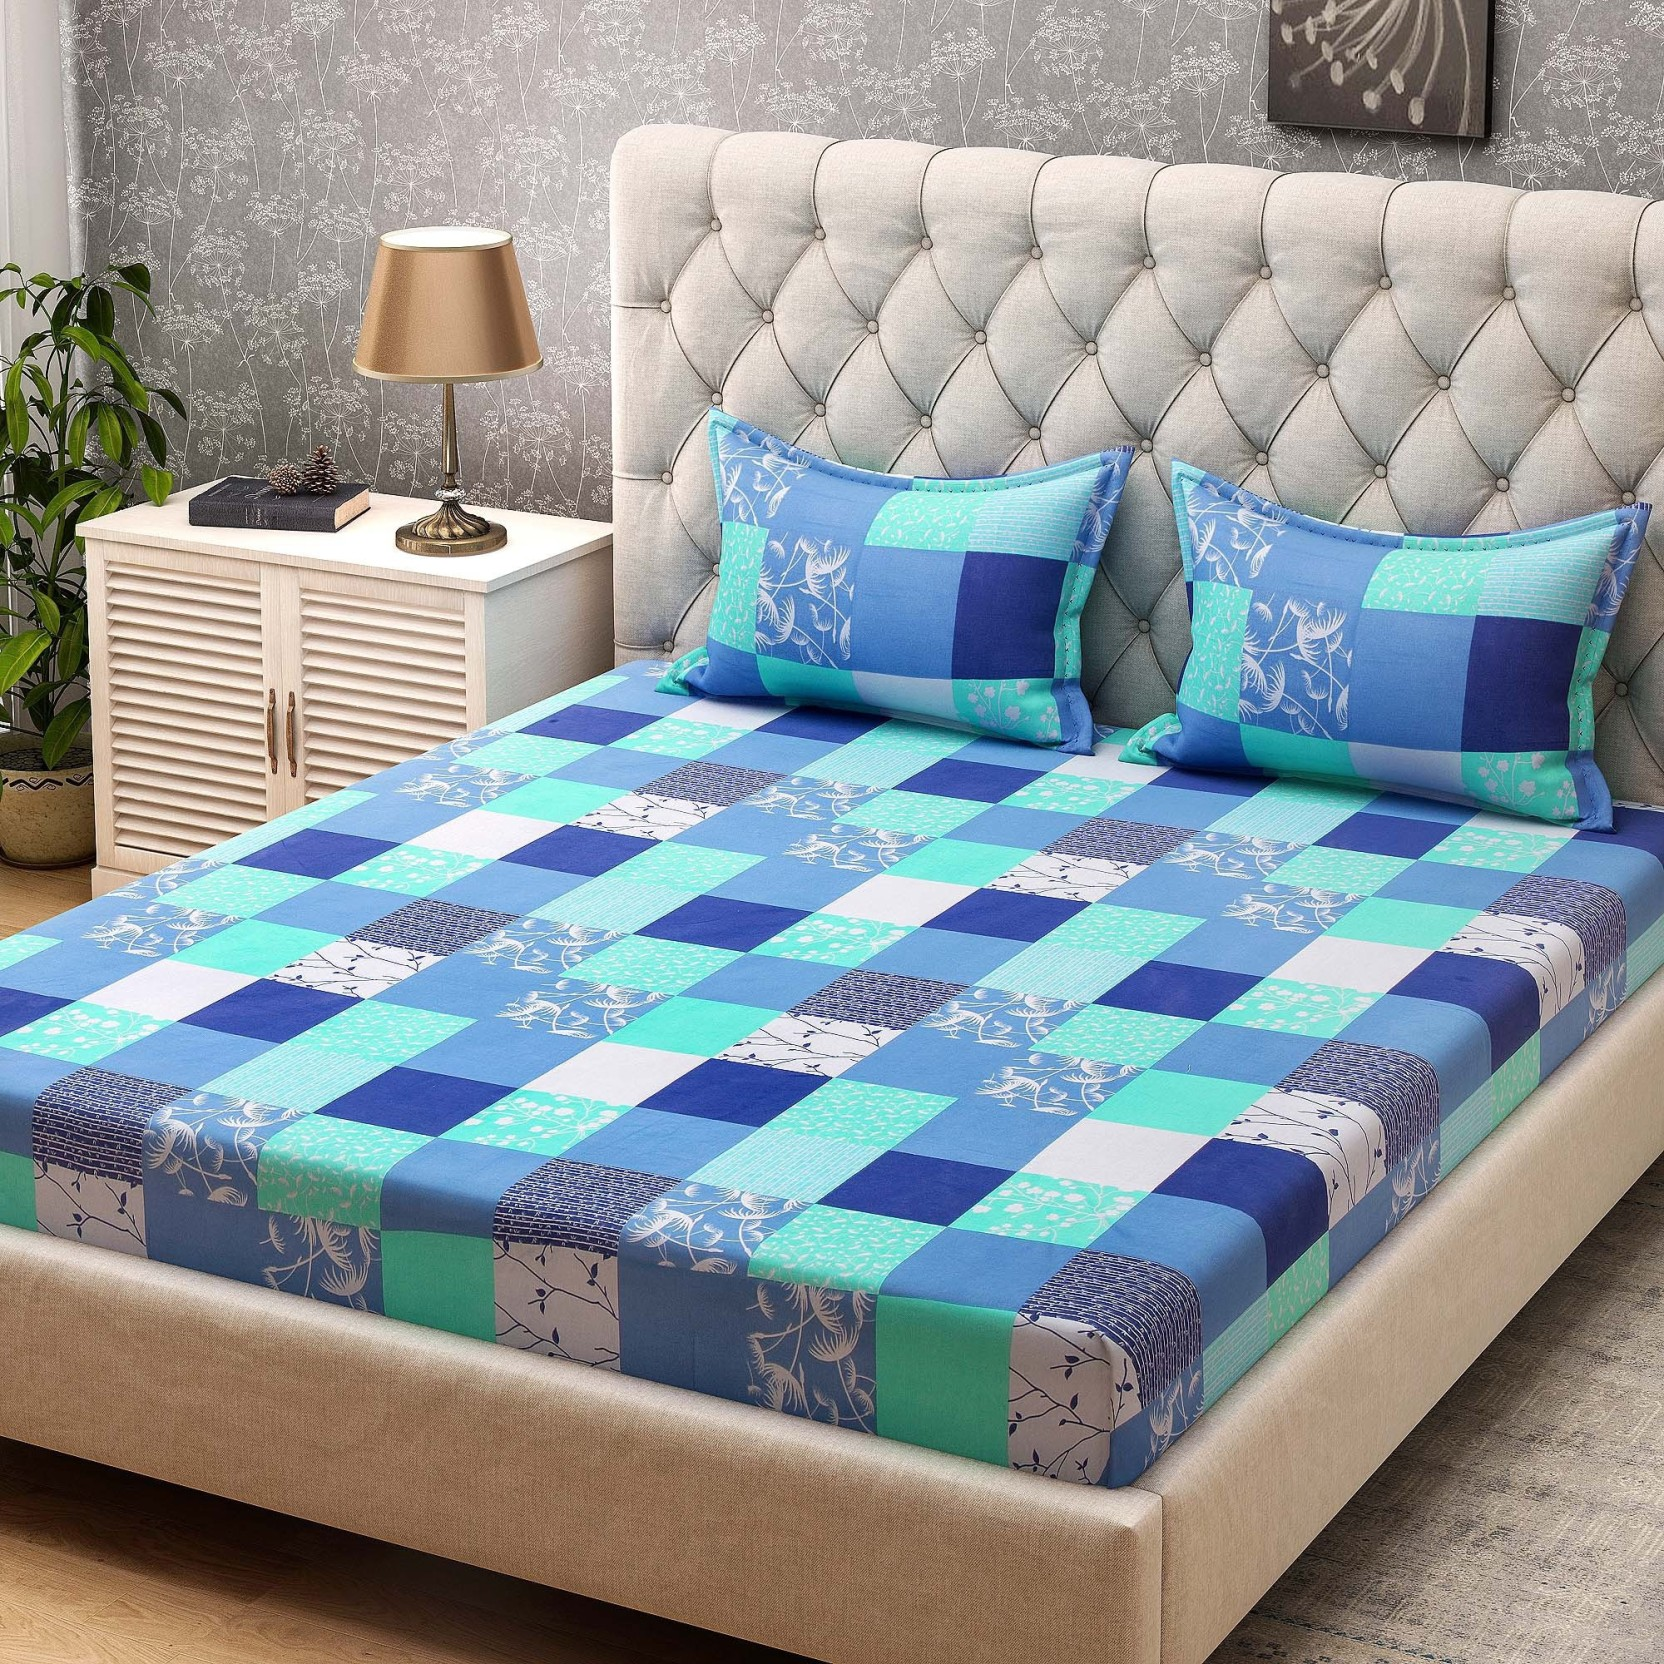 Bombay Dyeing Bed Sheet Price